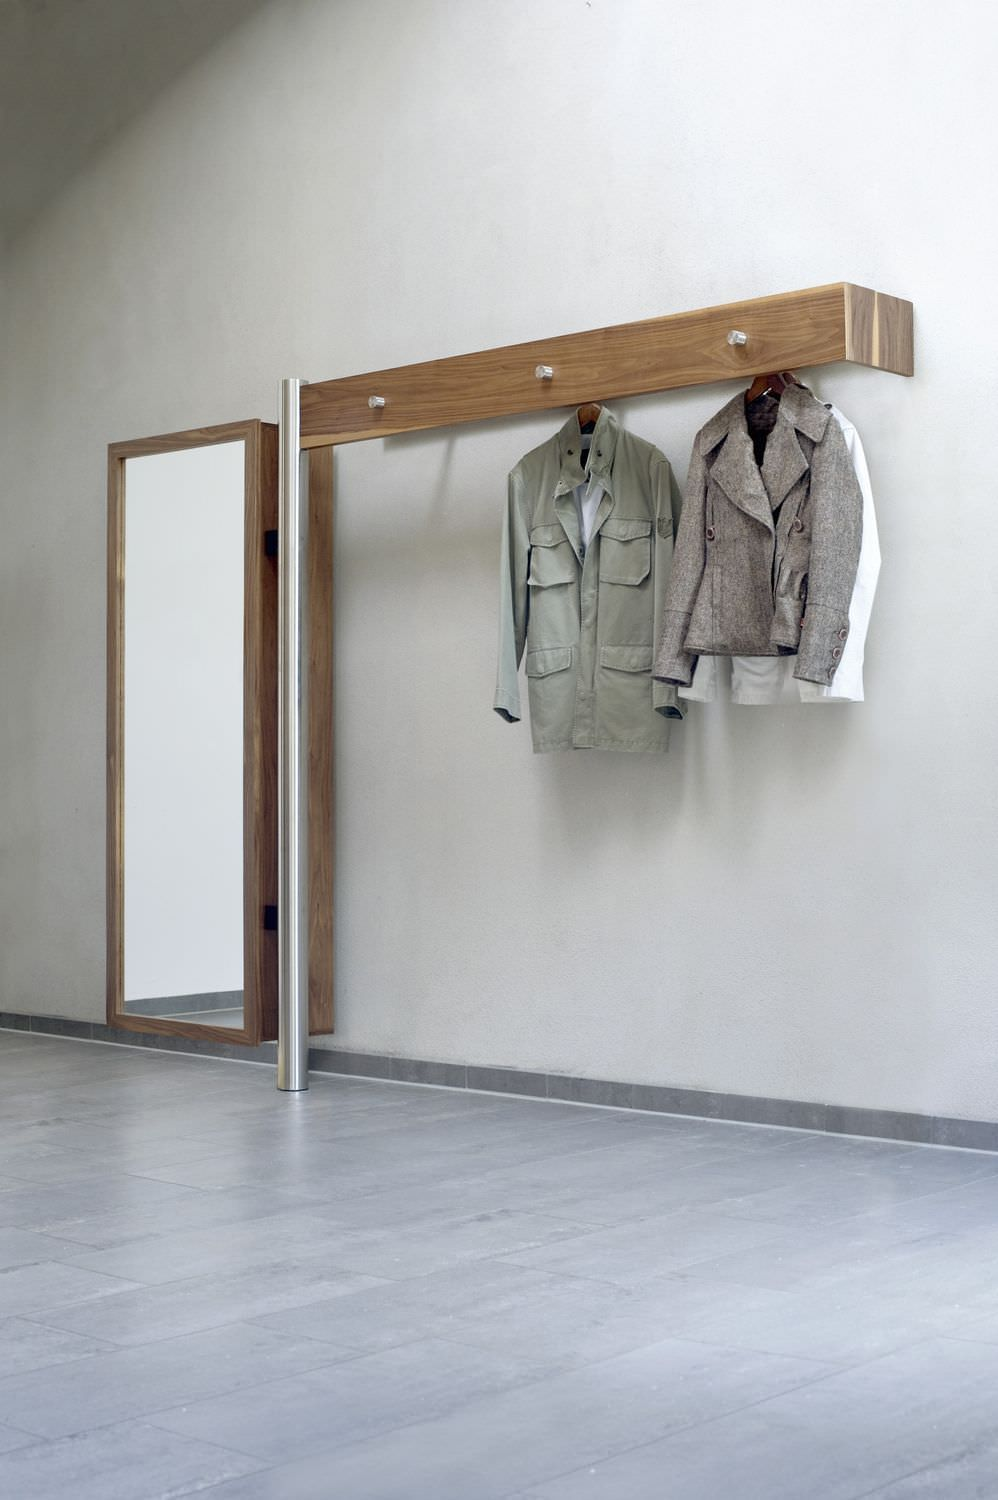 Flurmöbel Porta Wall Mounted Coat Rack Contemporary In Wood Stainless Steel